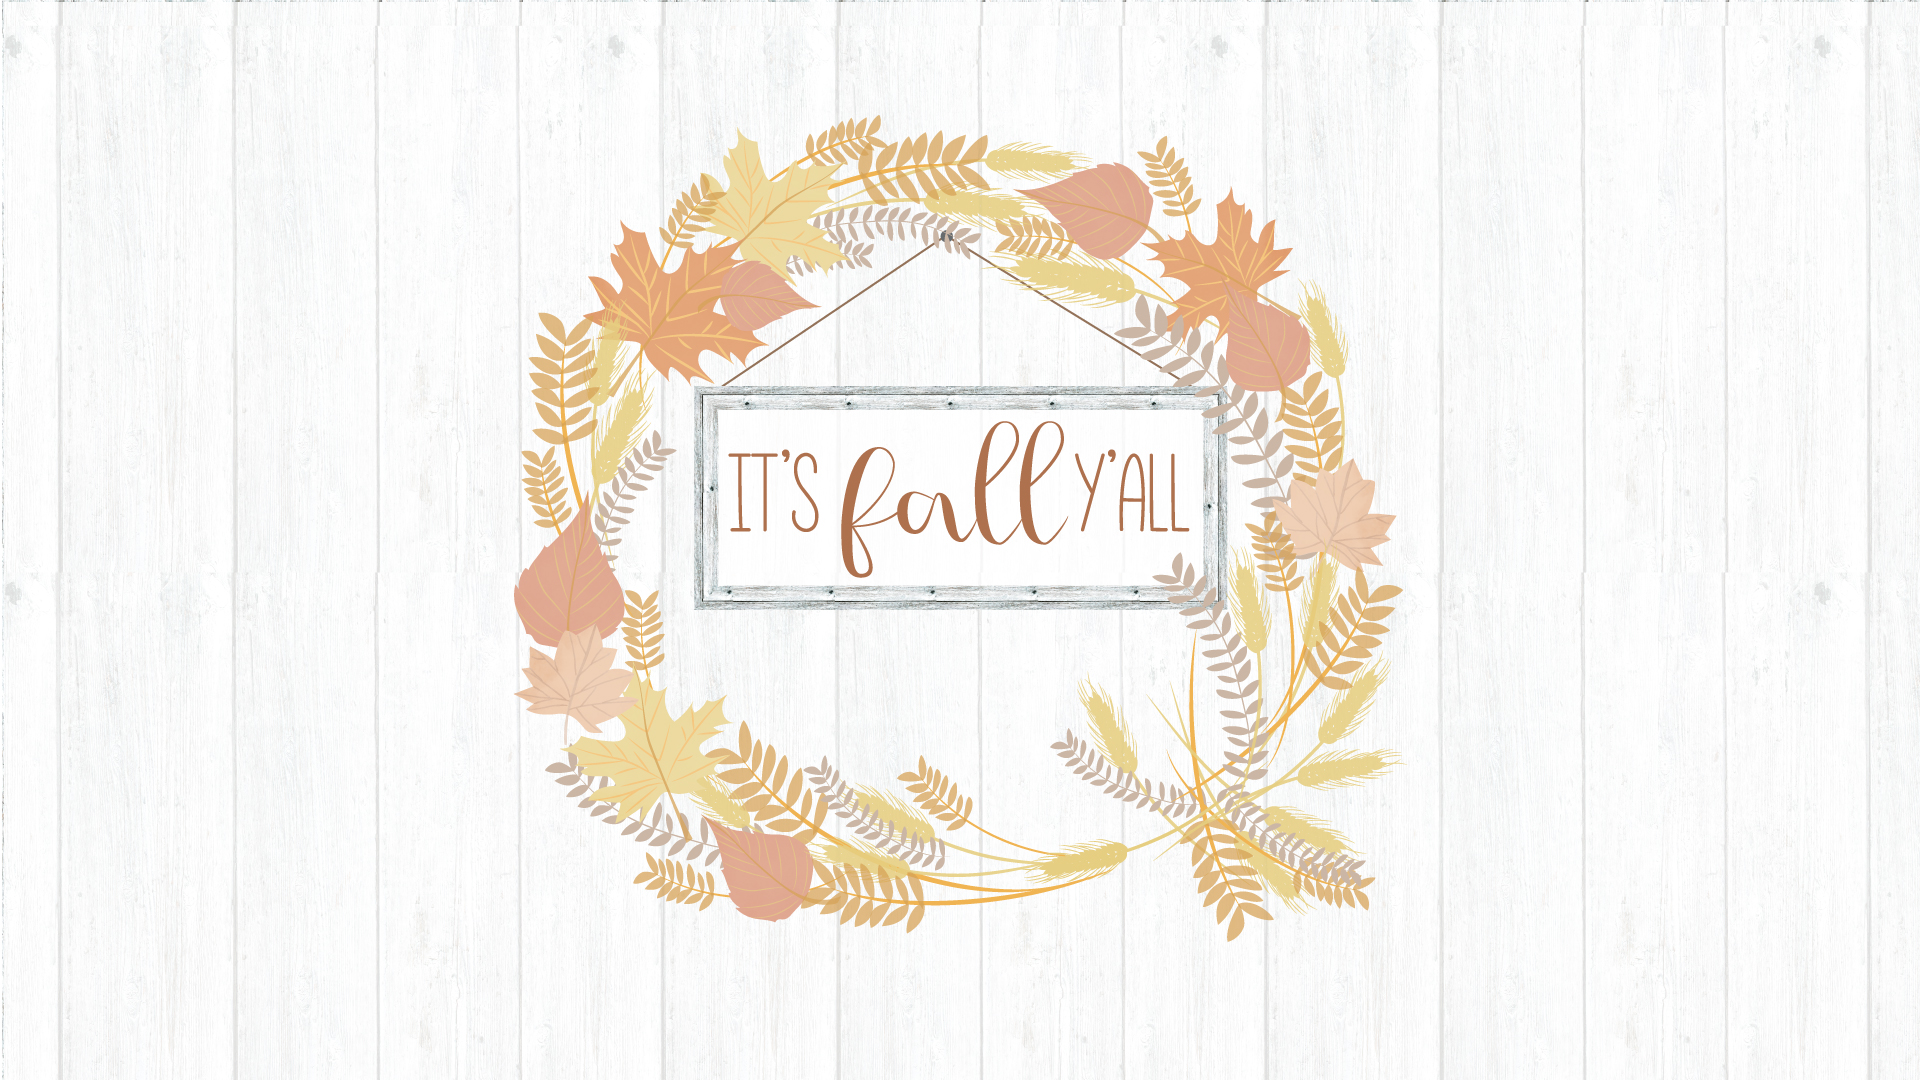 Fall Y All Freebie November 2018 Tech Wallpaper Design